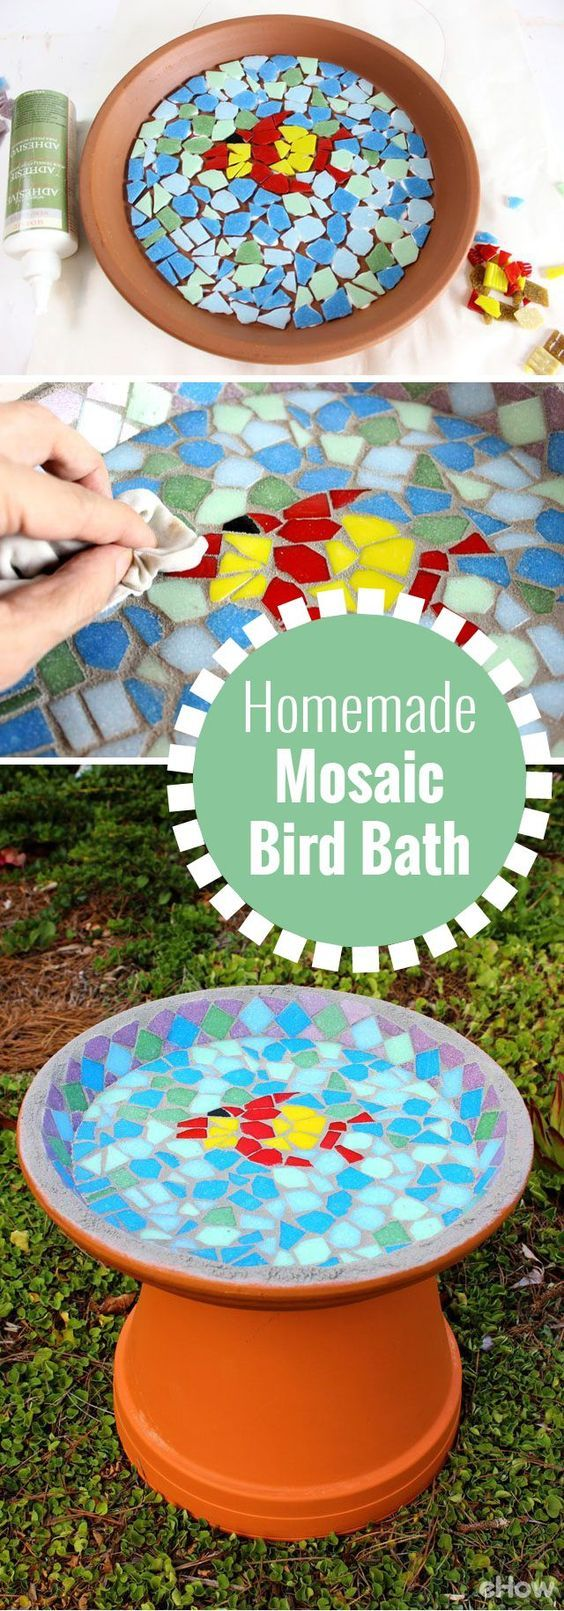 37 stenciled cinder block planter ideas and free 2017 from zola decor - How To Make A Homemade Mosaic Bird Bath